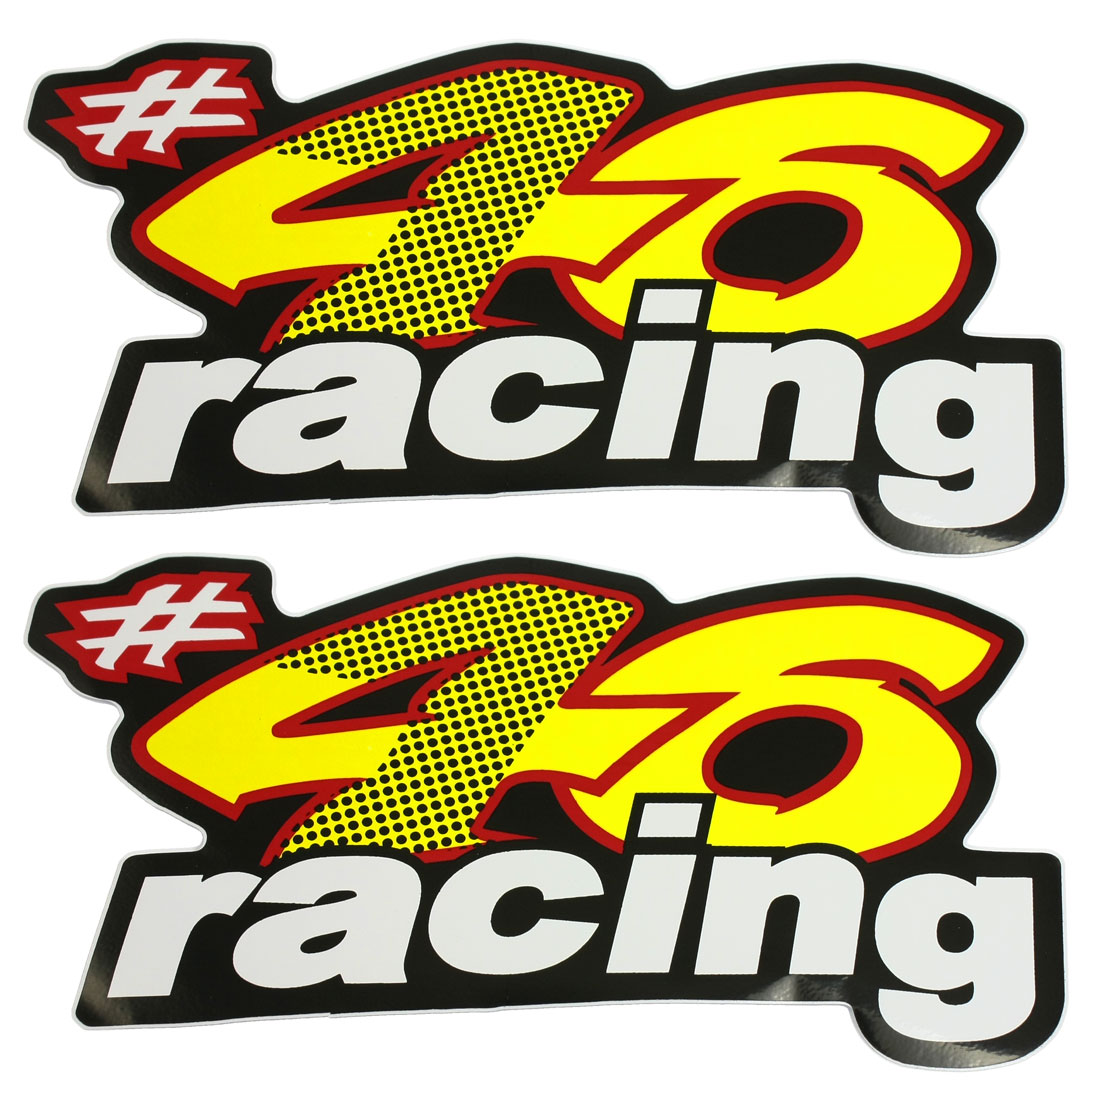 2 Pcs Colorful English Words Pattern Decorative Sticker for Race Car